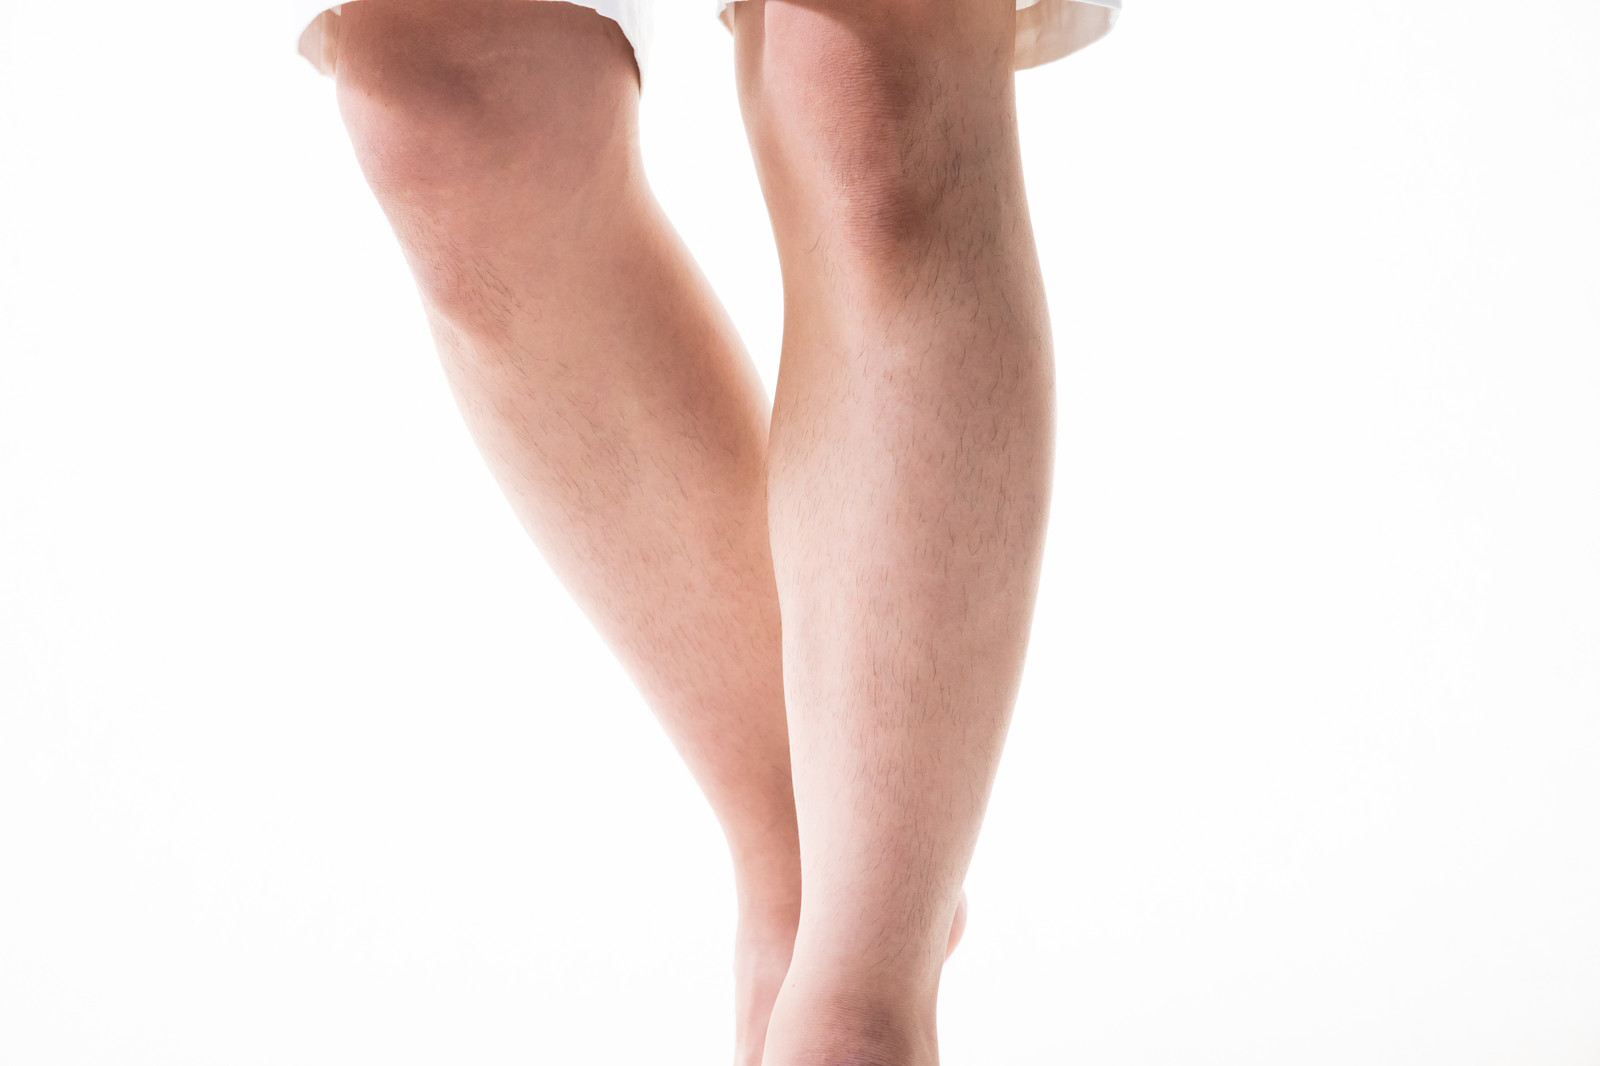 Pain in the knee joint